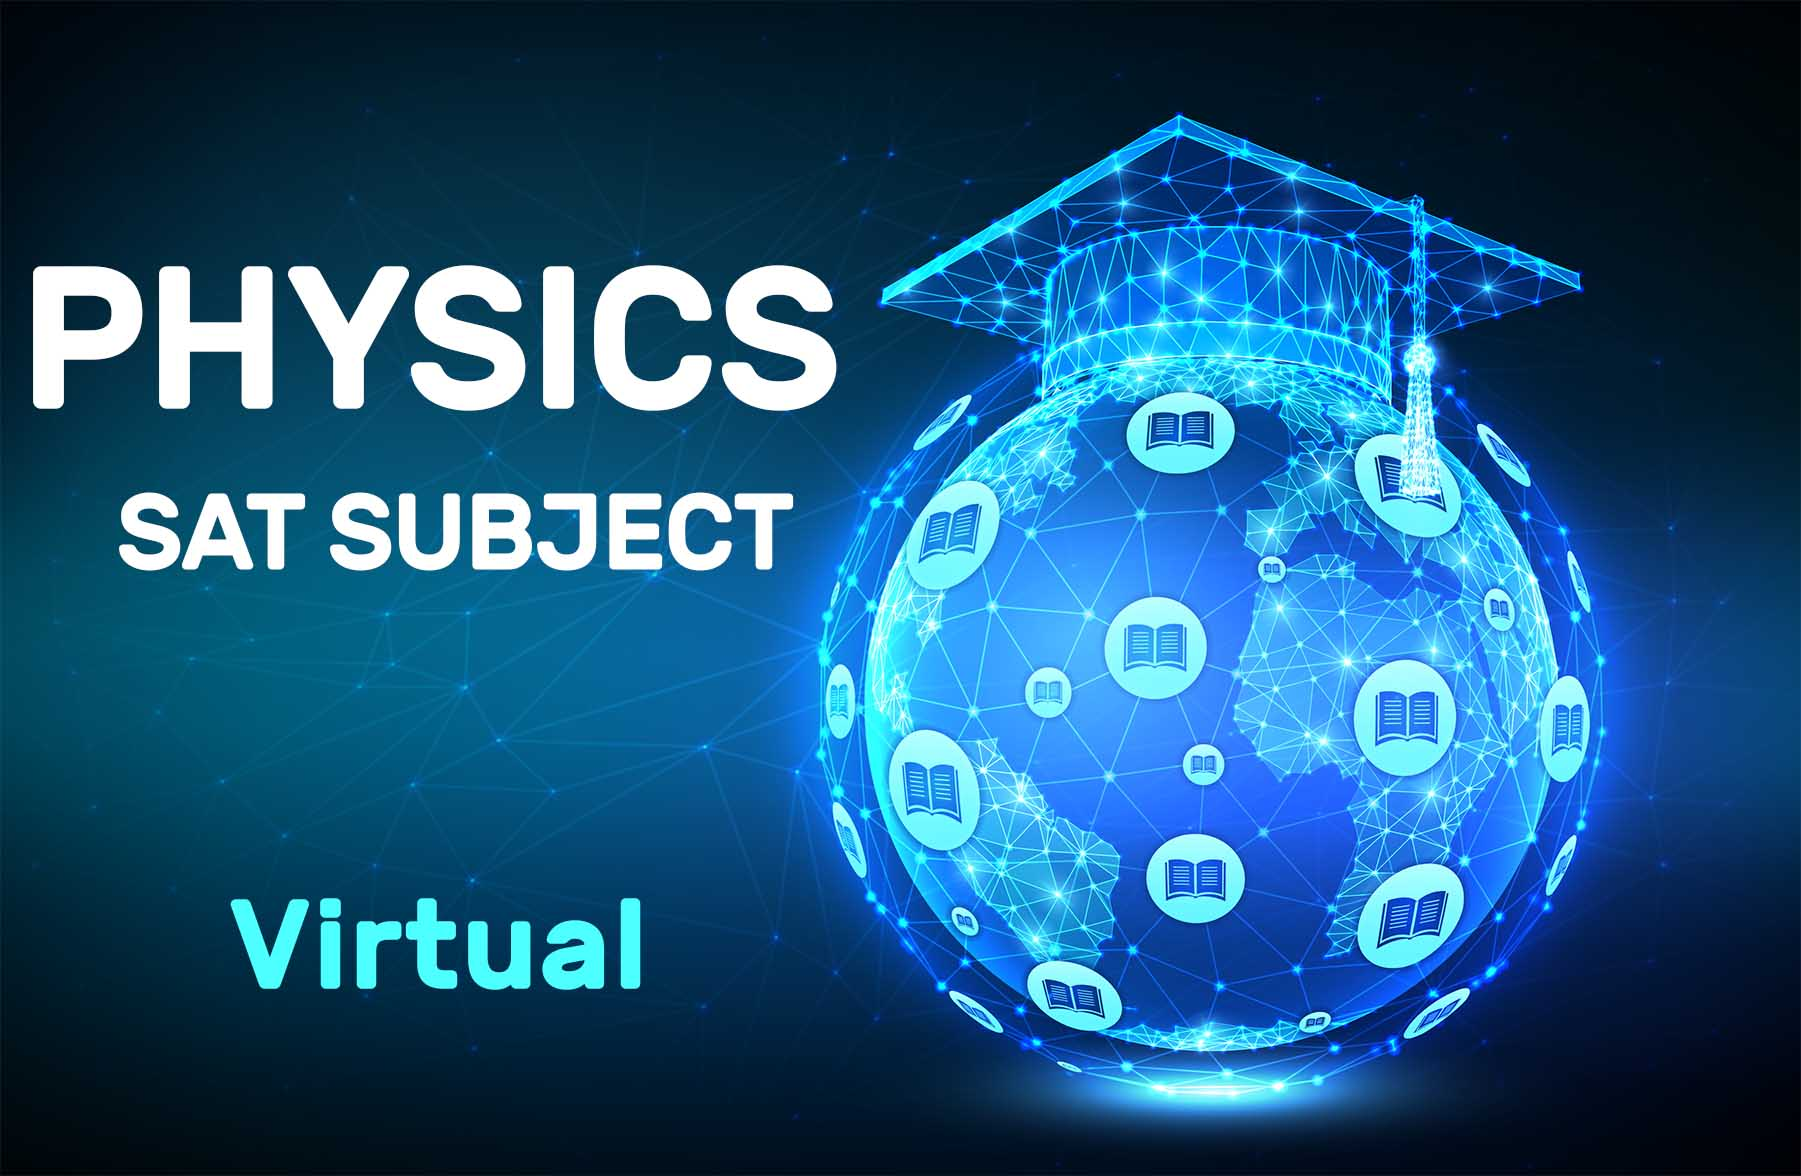 PHYSICS SAT SUBJECT – Virtual